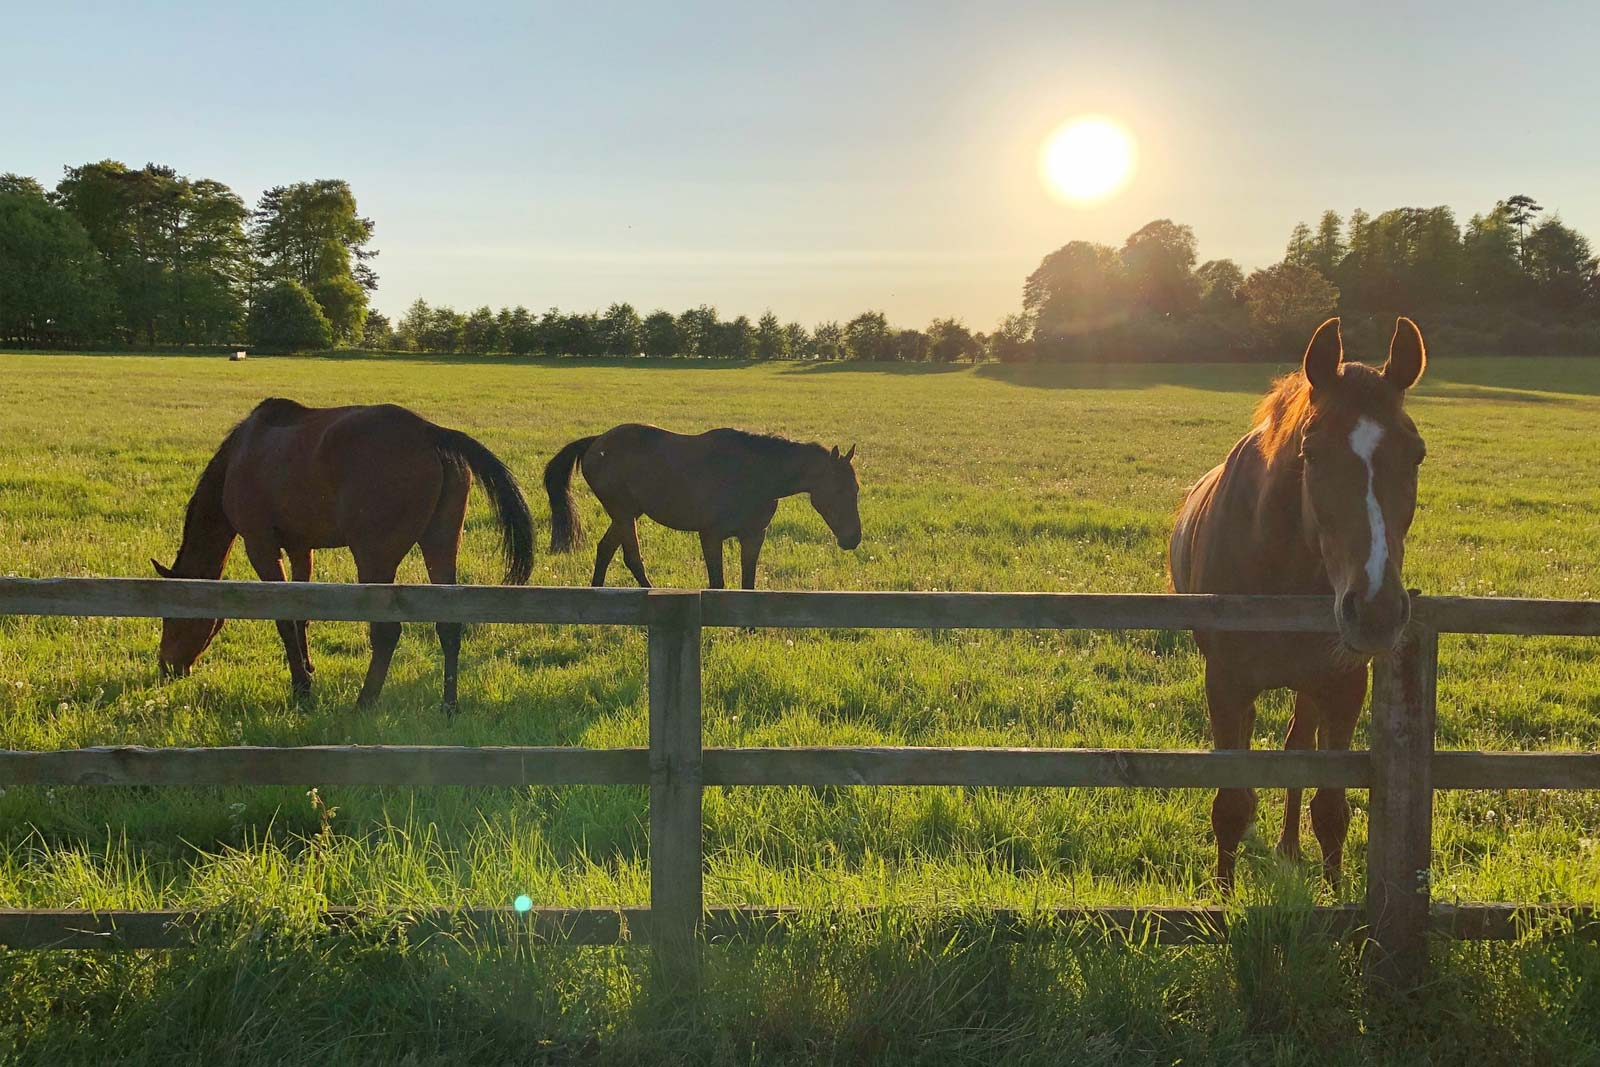 Horses in pasture at sunset.